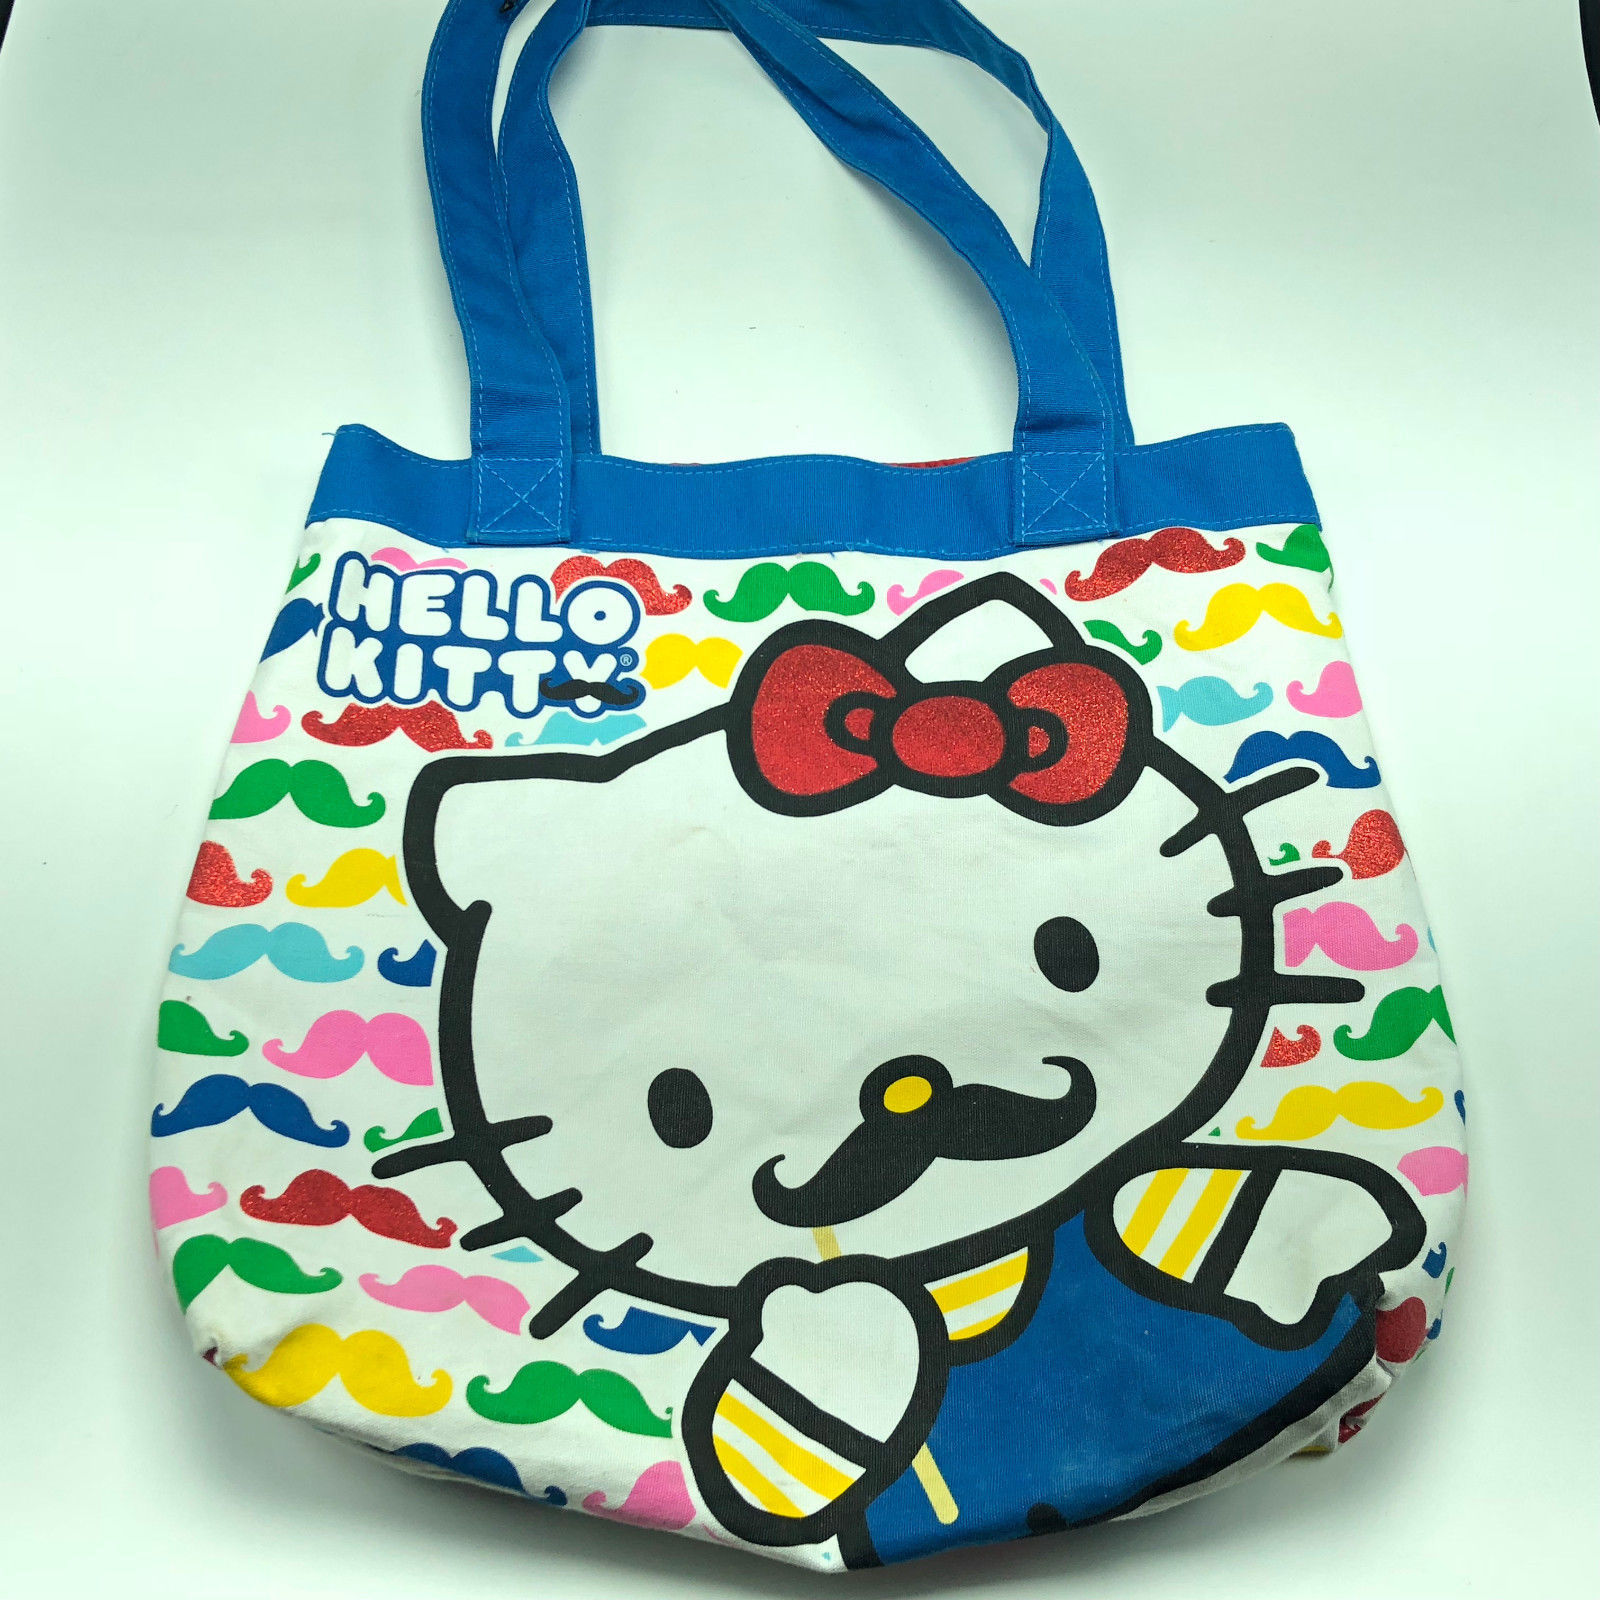 f67d099ef Hello Kitty Clutch Purse Bag Sanrio and 50 similar items. S l1600